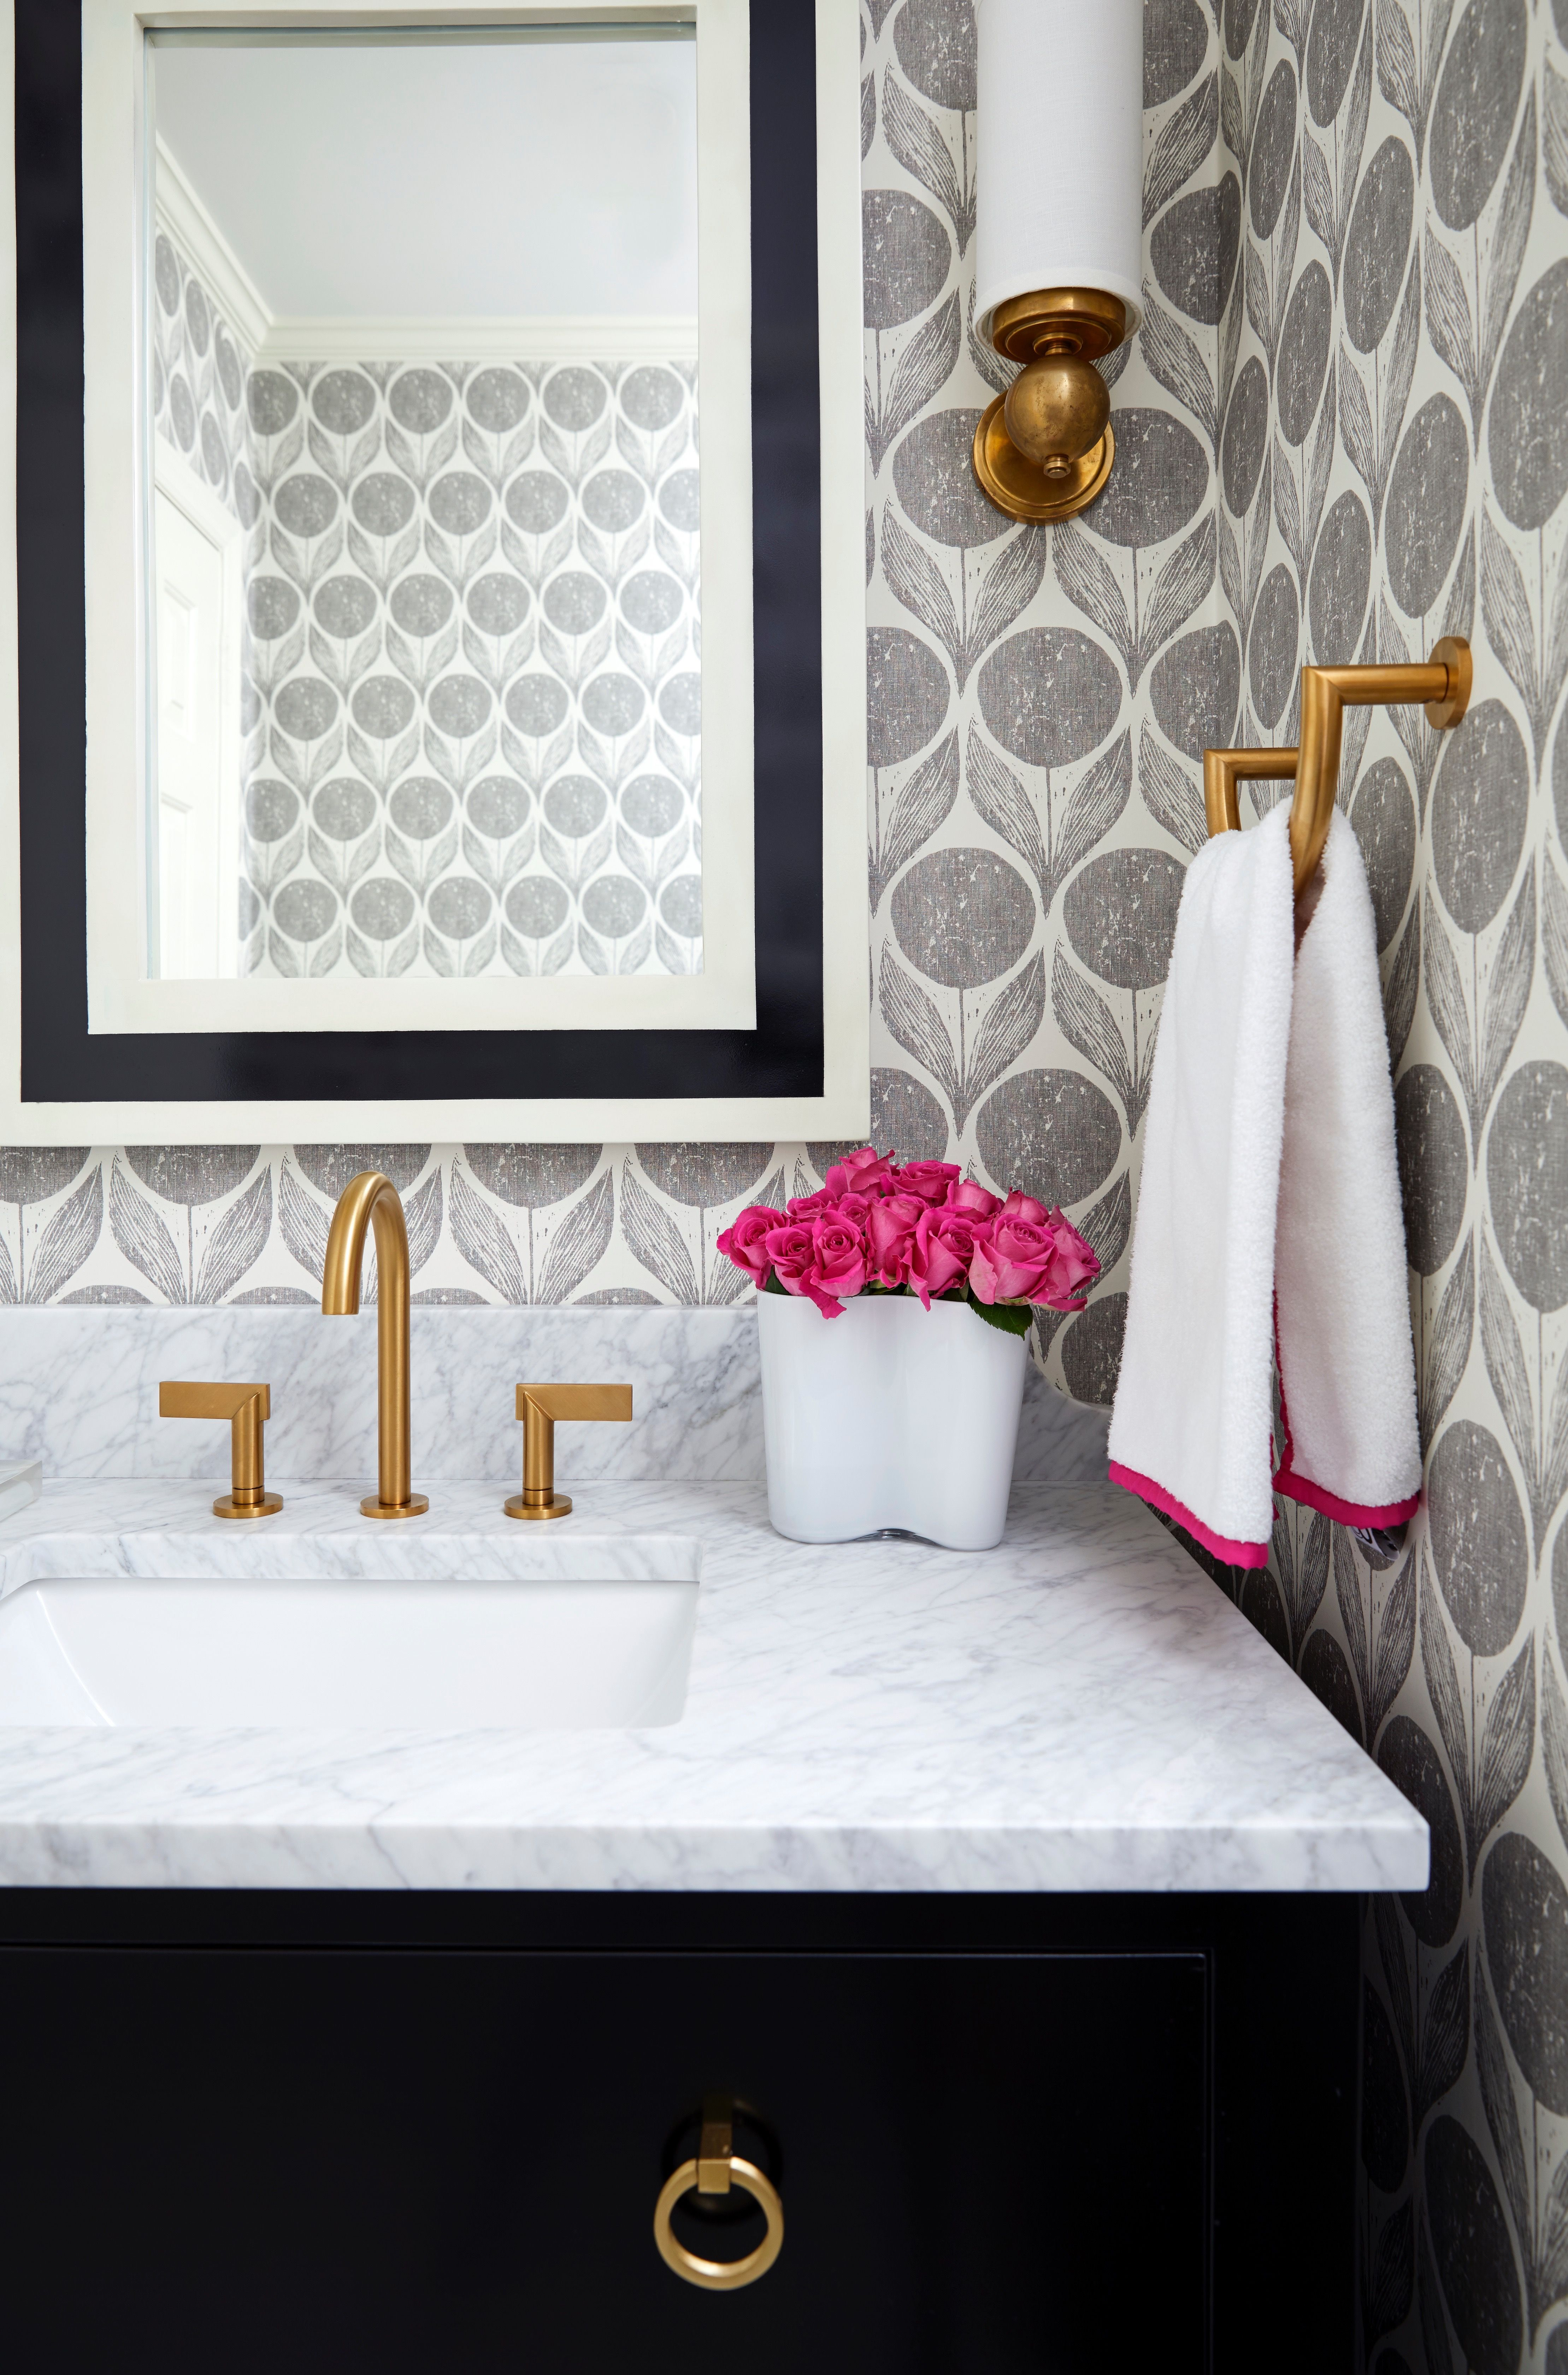 Katie Emmons Is A Charlotte Interior Decorator And Designer With 20 Years Of Creating Beautiful